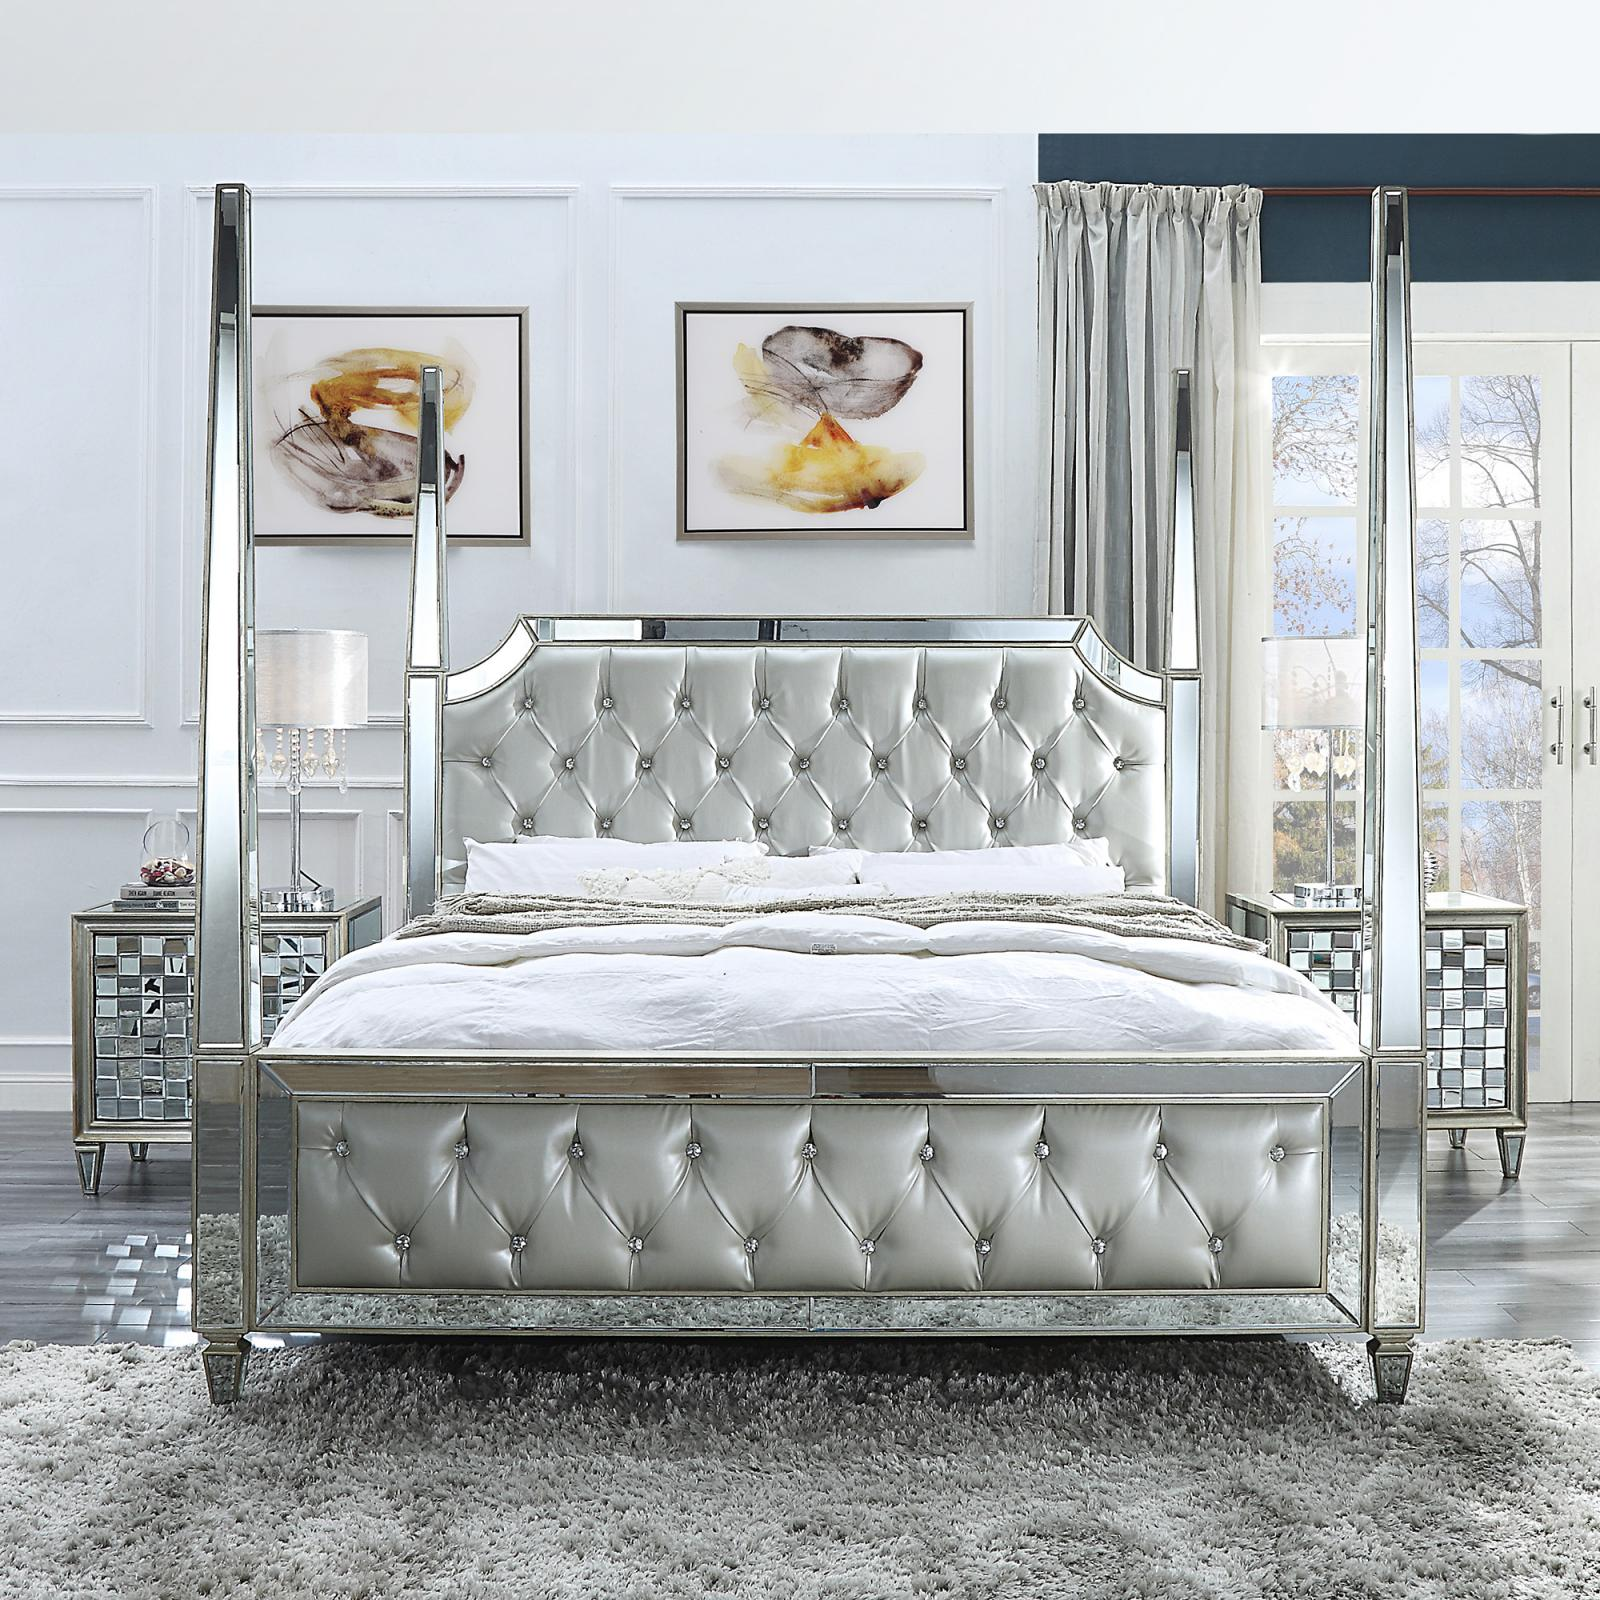 Modern Silver, Mirrored Faux Leather and Metal, Faux Leather Canopy King Bedroom Set 3 pcs HD-6001 by Homey Design